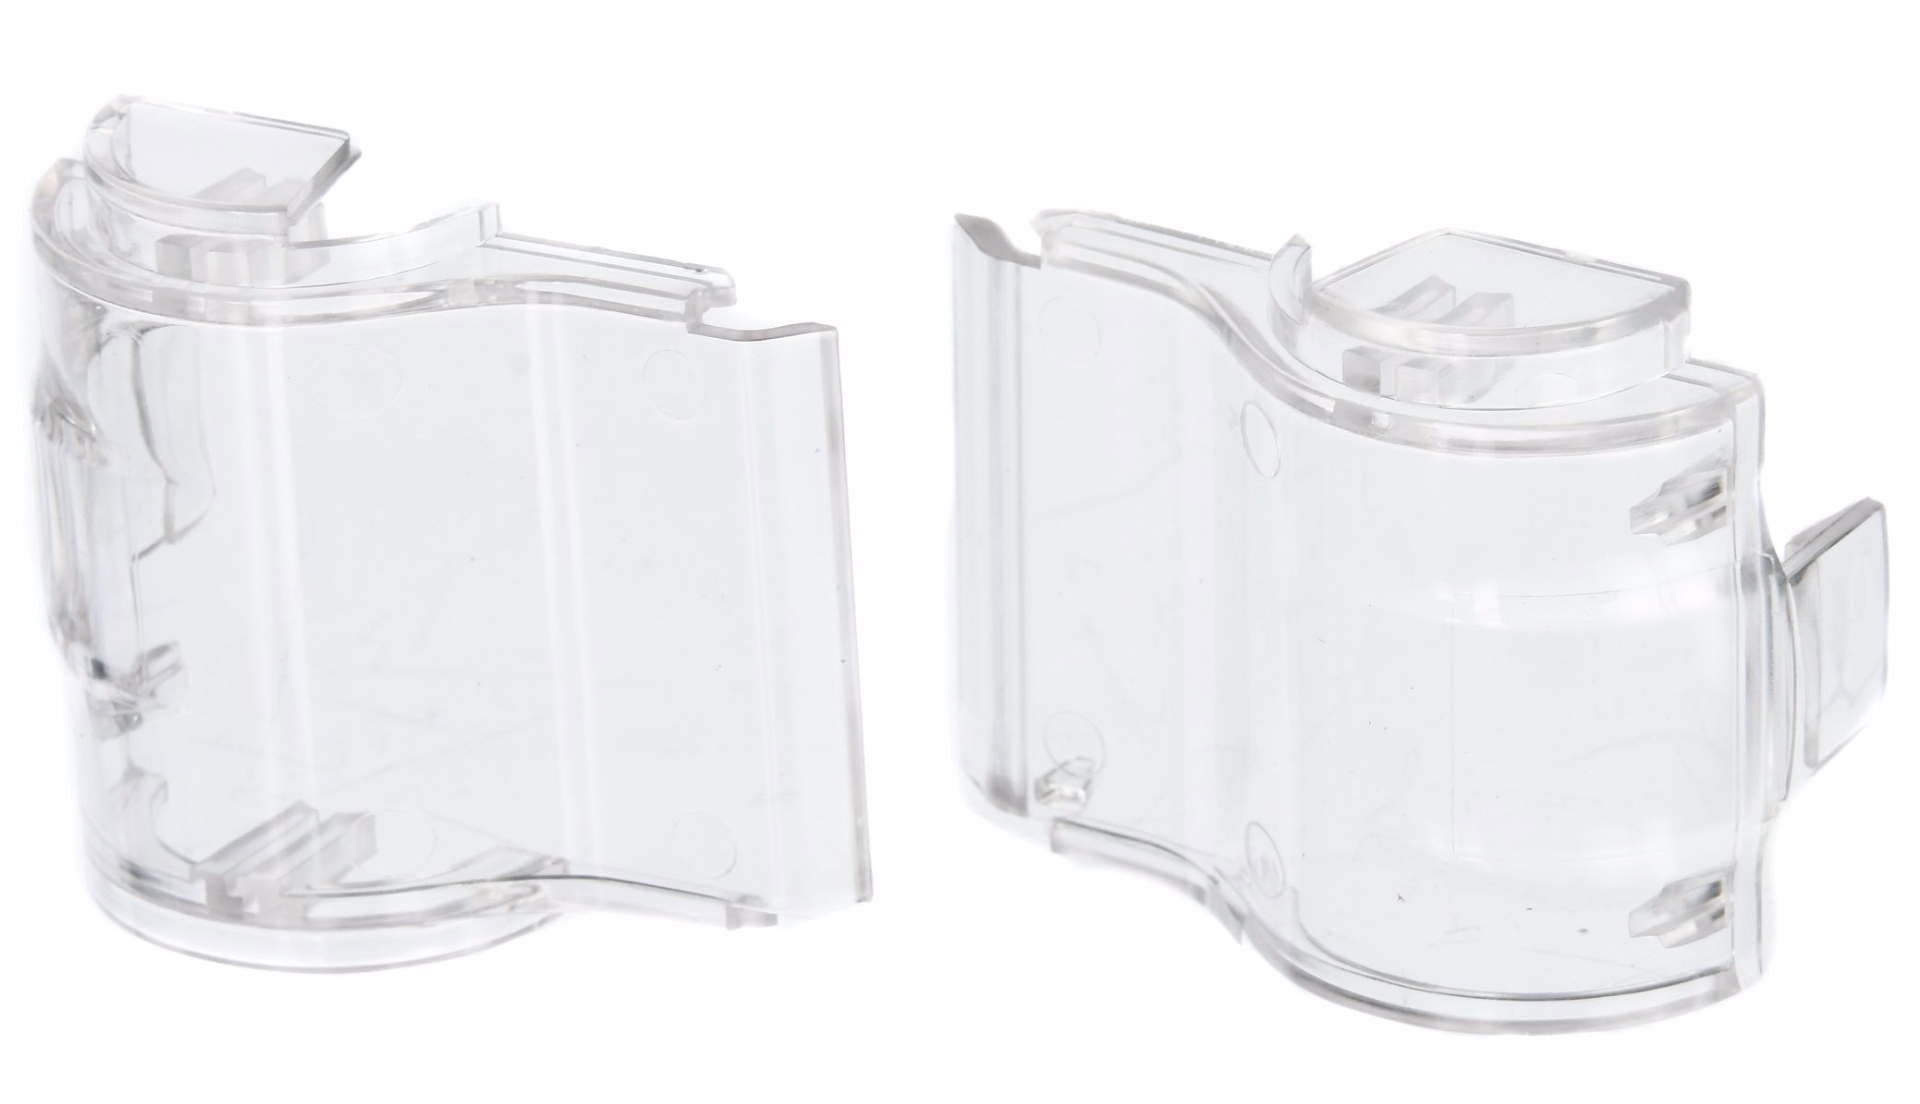 100% SVS Replacement Canister Lids | Glasses